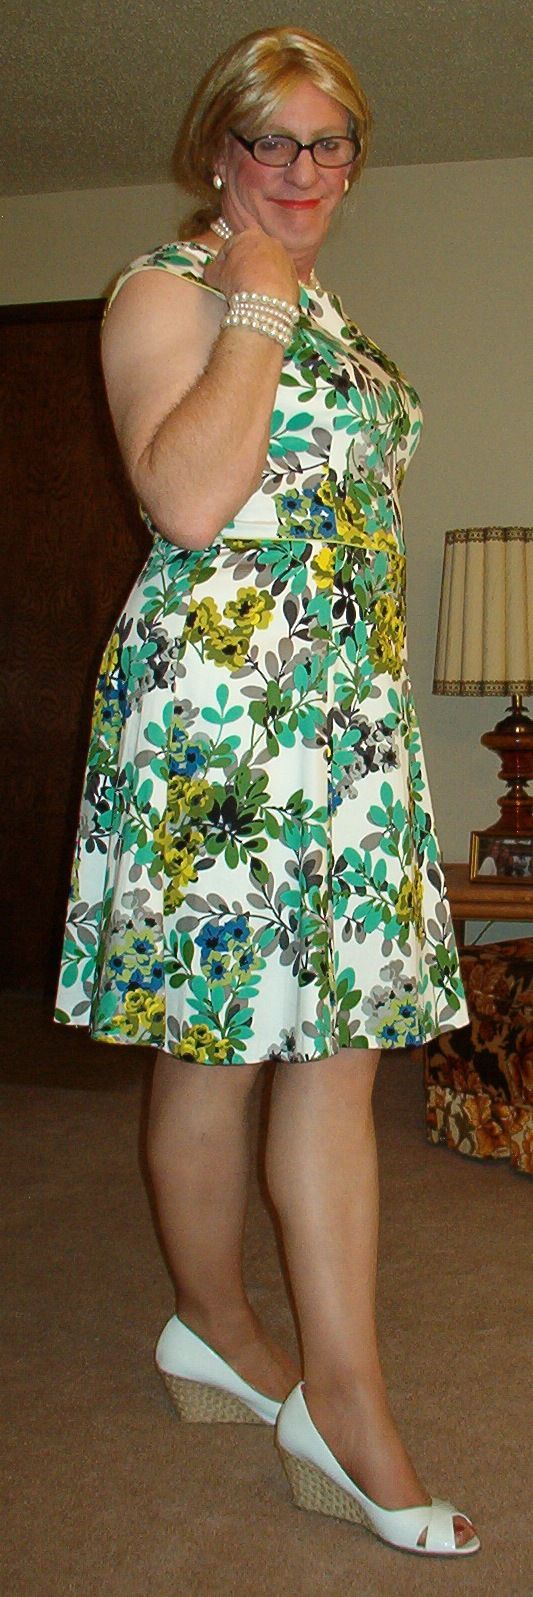 Spring Floral Dress Plus Sized And Feminine Danny And